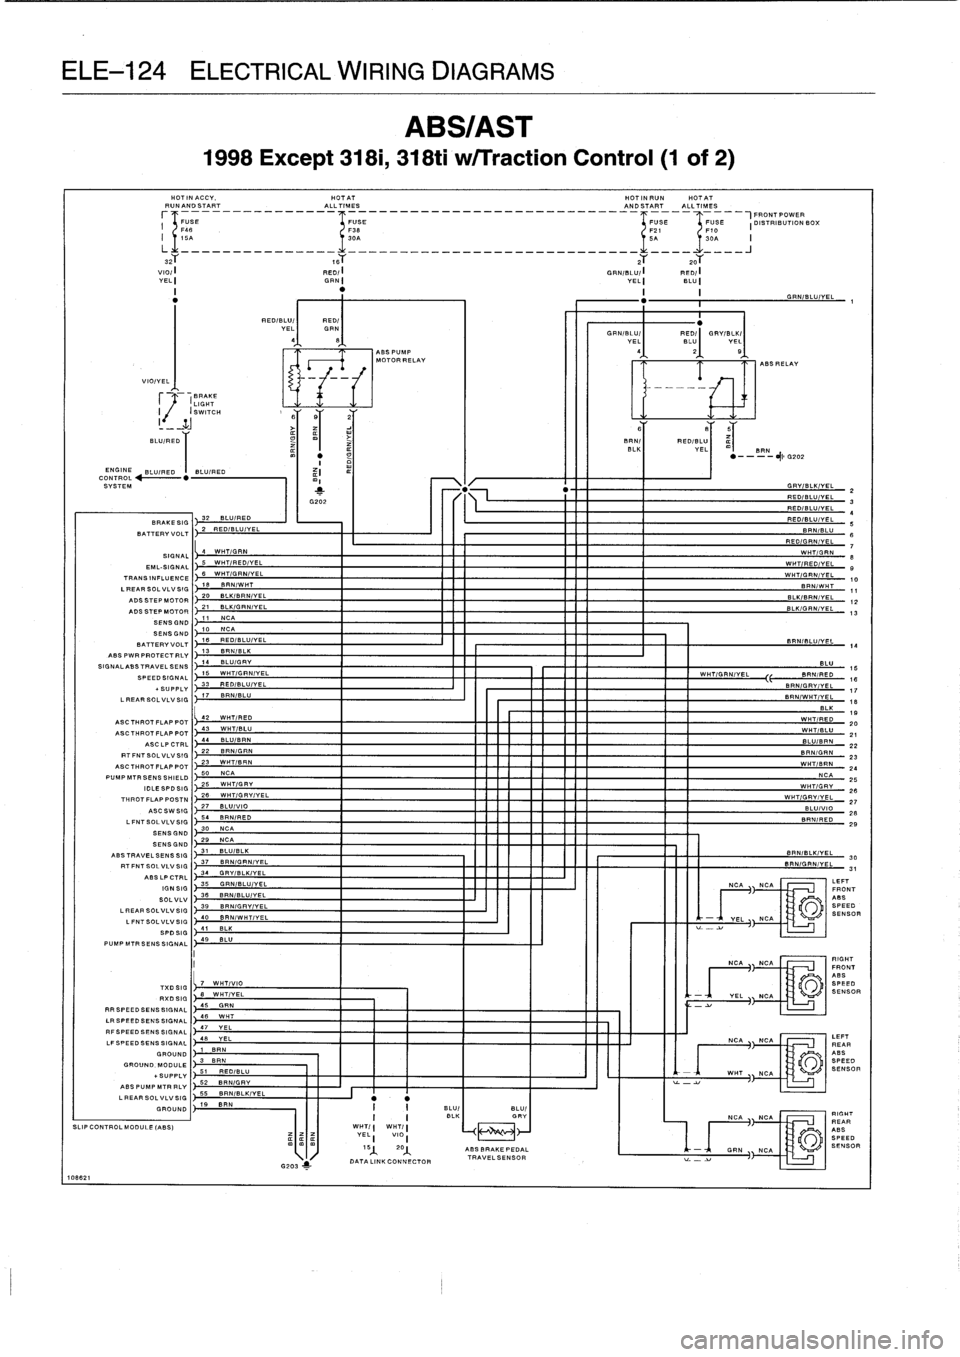 Traction Control Bmw 325i 1992 E36 Workshop Manual Ih 606 Wiring Diagram Page 607 Ele 124 Electrical Diagrams